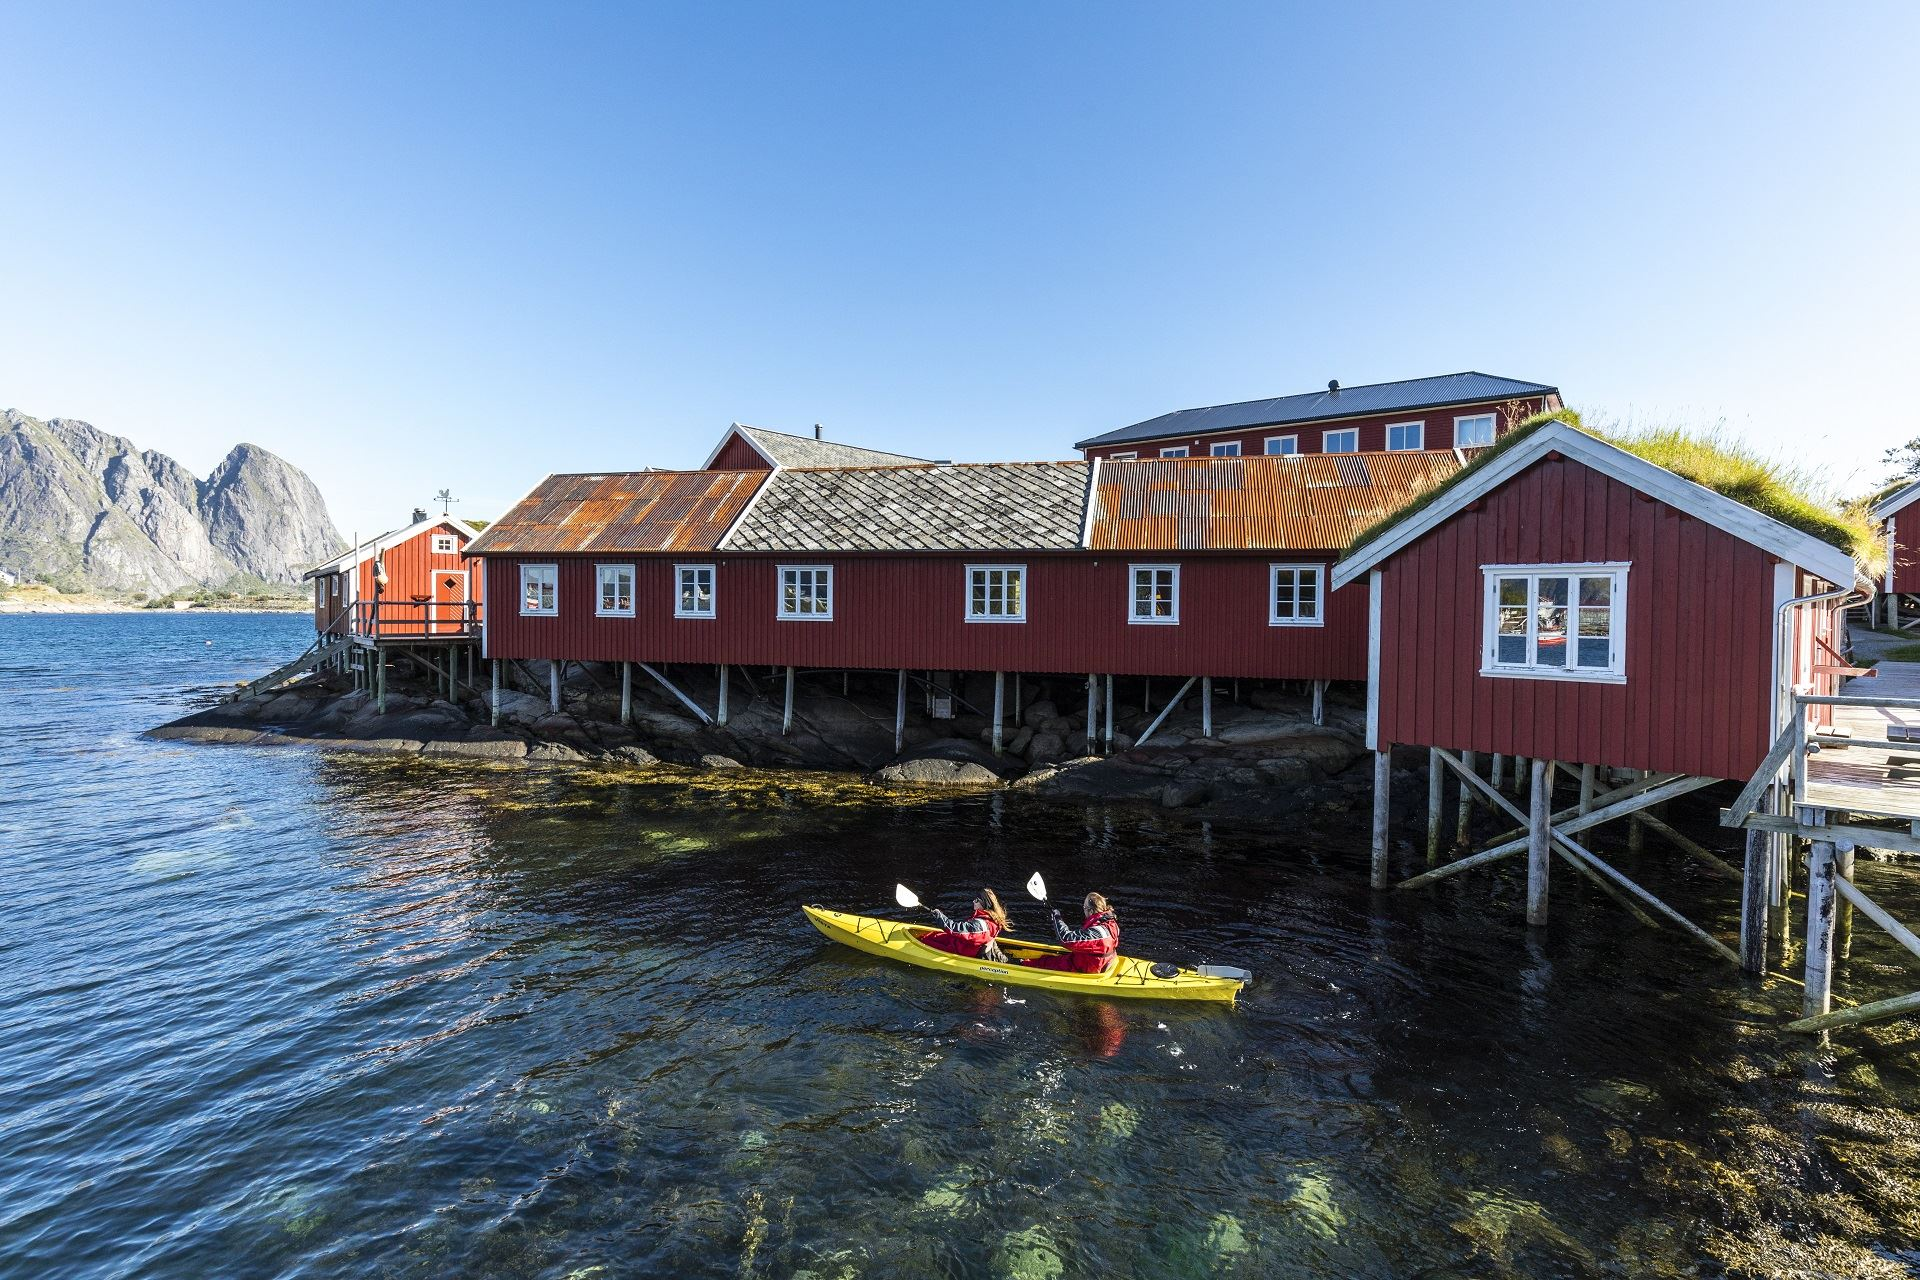 Kayaking in beautiful surroundings around Reine